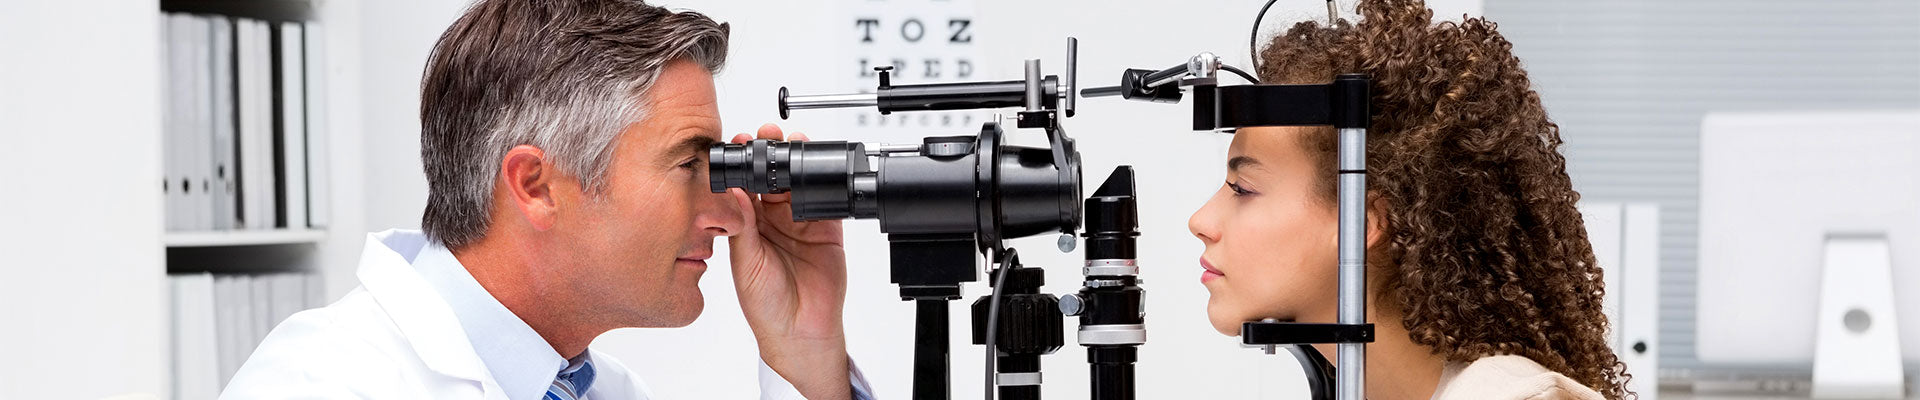 In-house optometrist